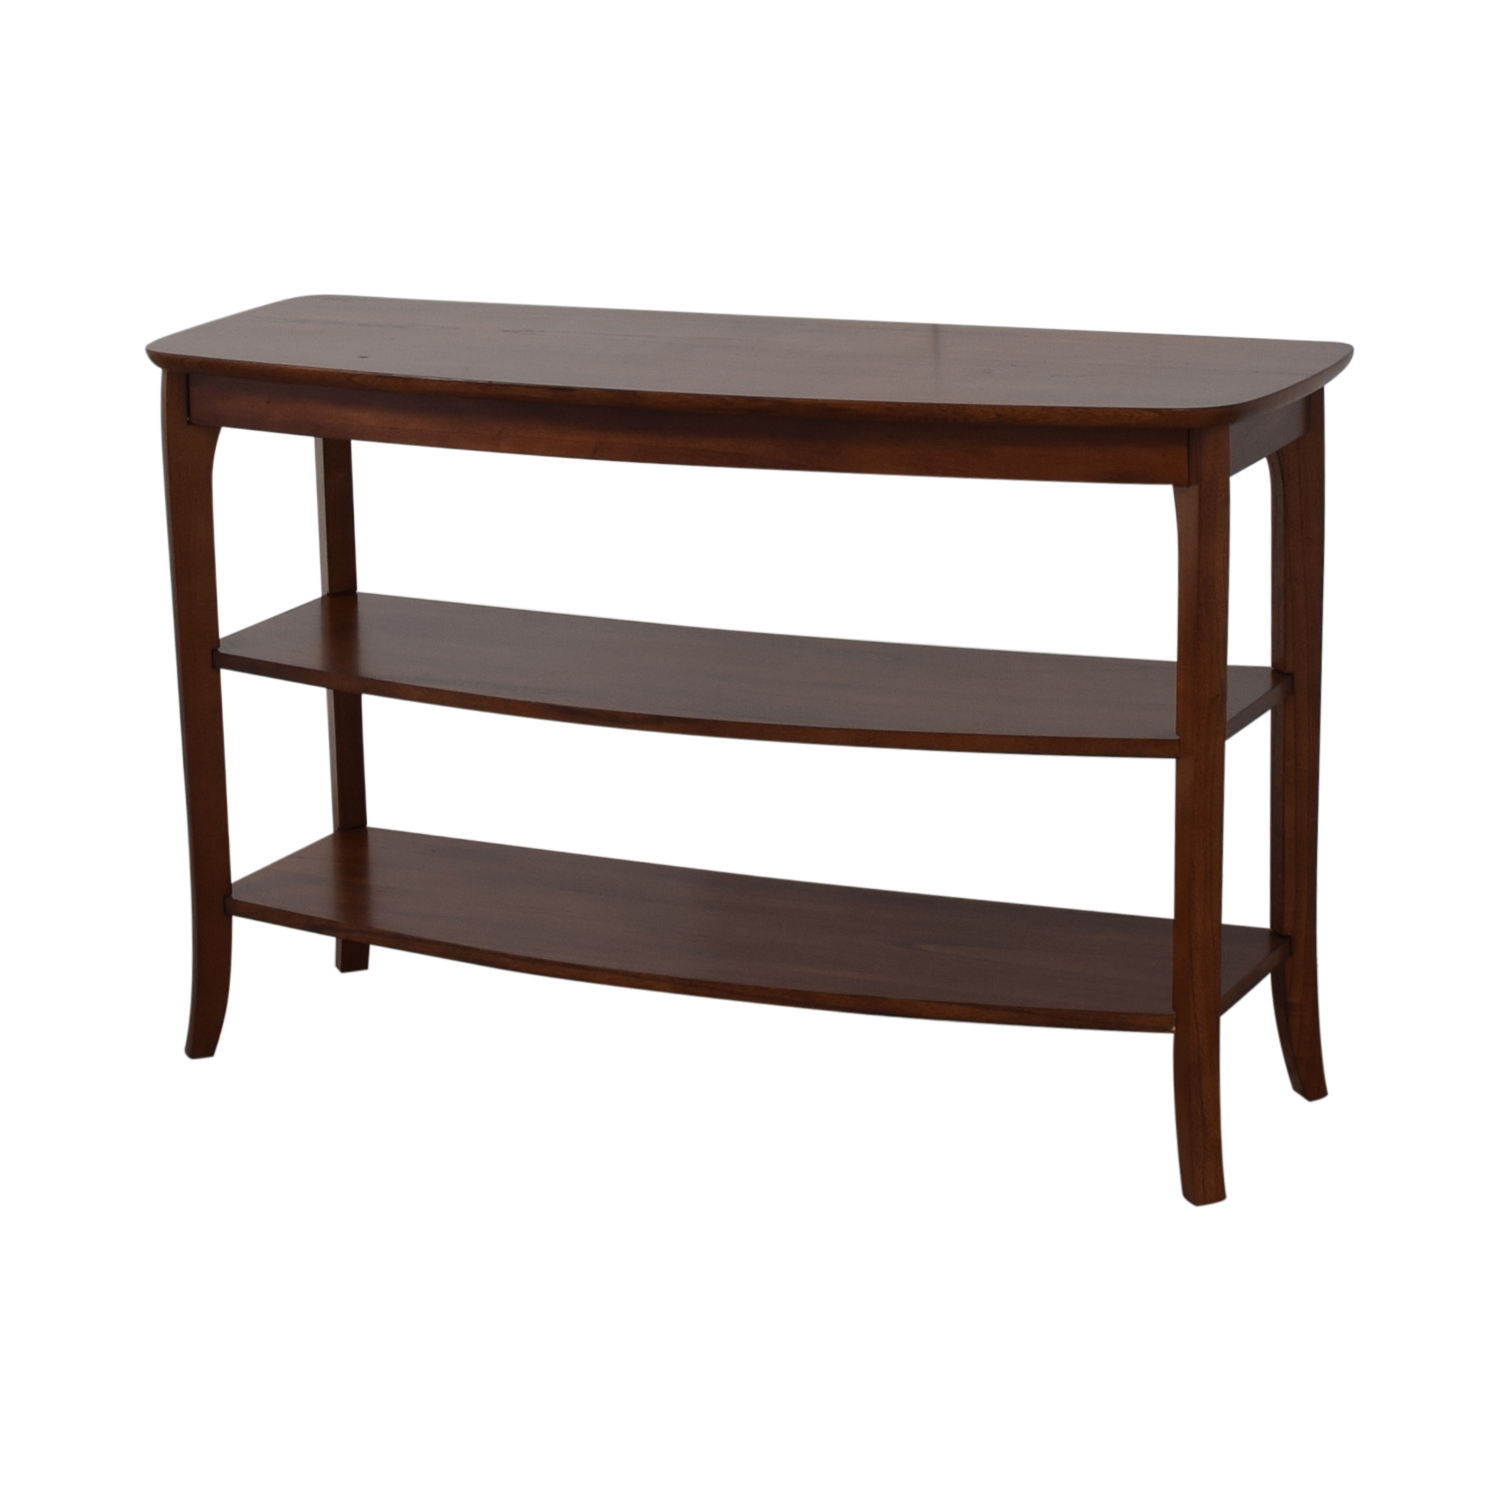 Pottery Barn Pottery Barn Chloe Wood Console coupon